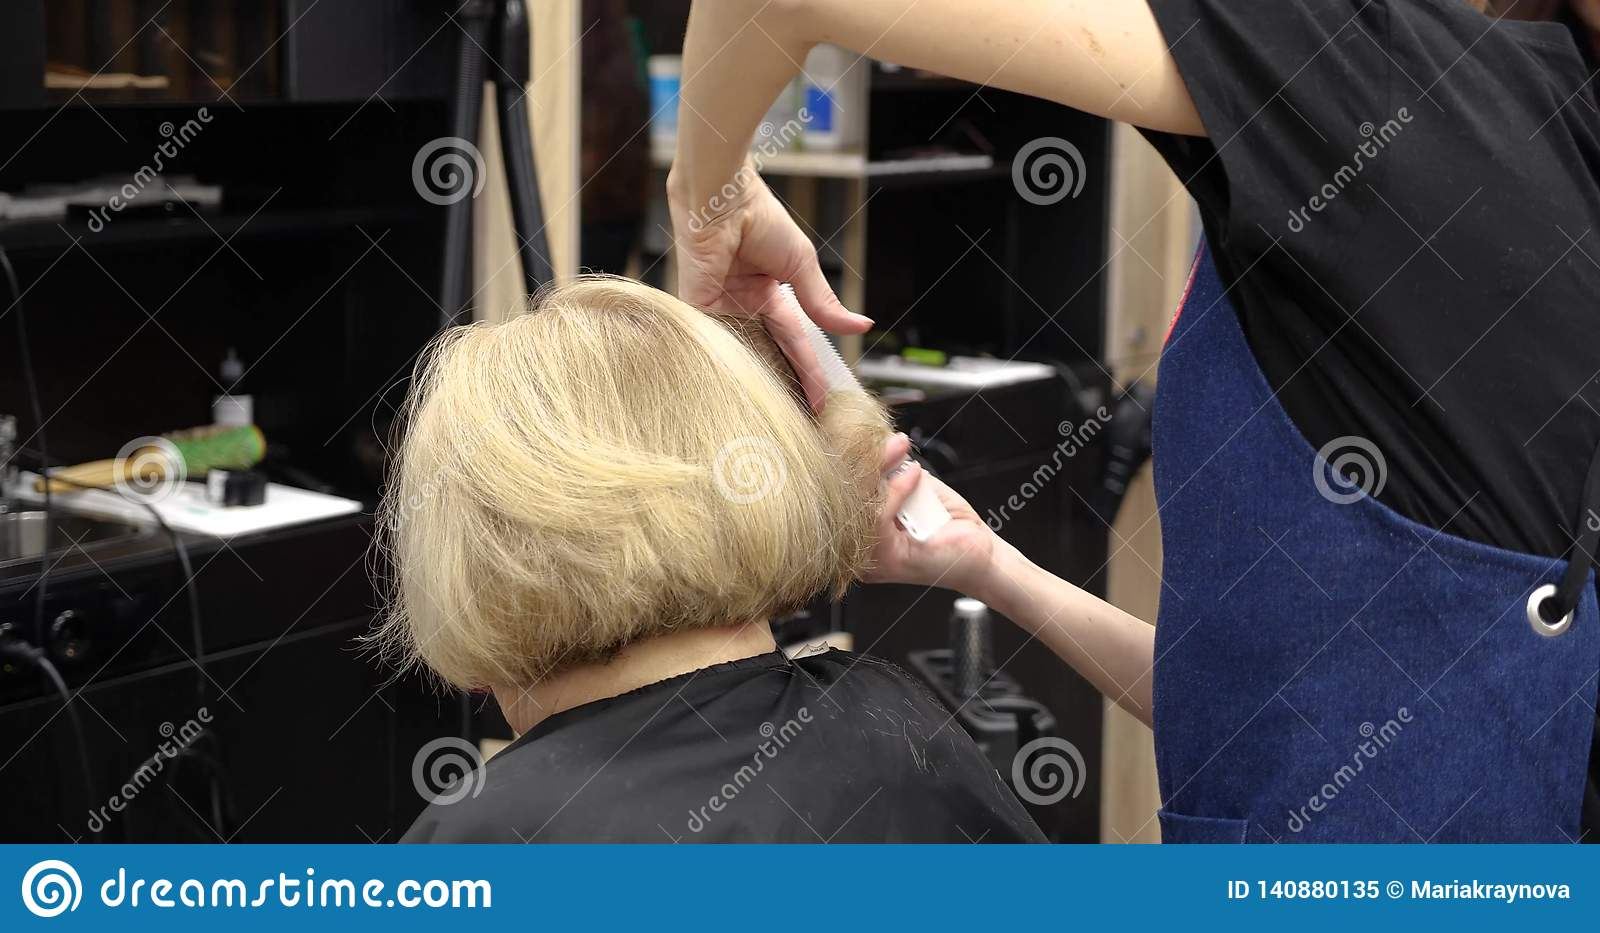 Professional hairdresser, stylist combing hair of female client and cutting hair in professional hair salon